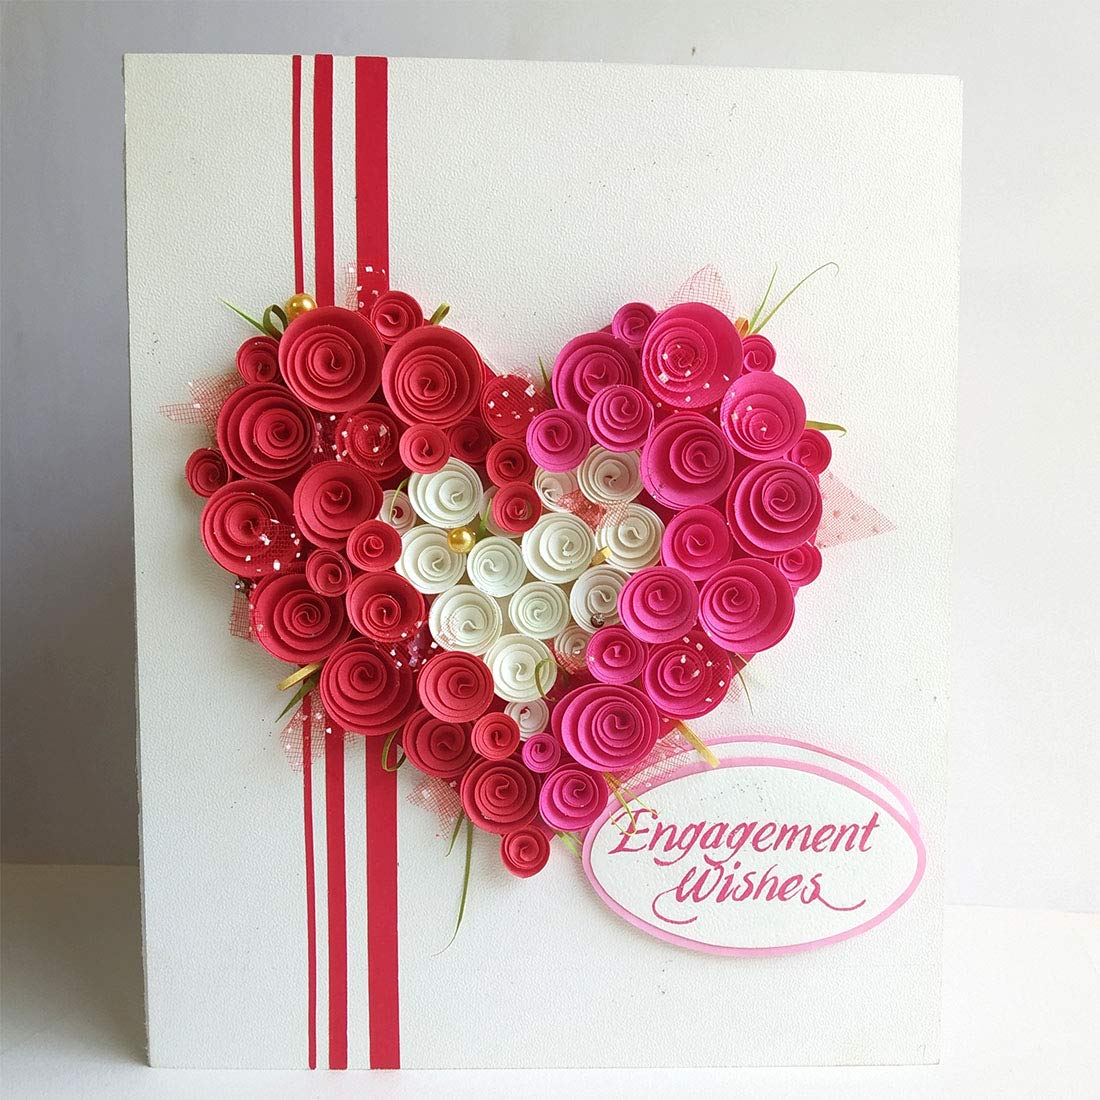 Swapnil Arts Handmade 3D Paper Quilling Engagement Greeting Card- Gift for  Fiancee/Fiance/Friend/Couple: Amazon.in: Office Products